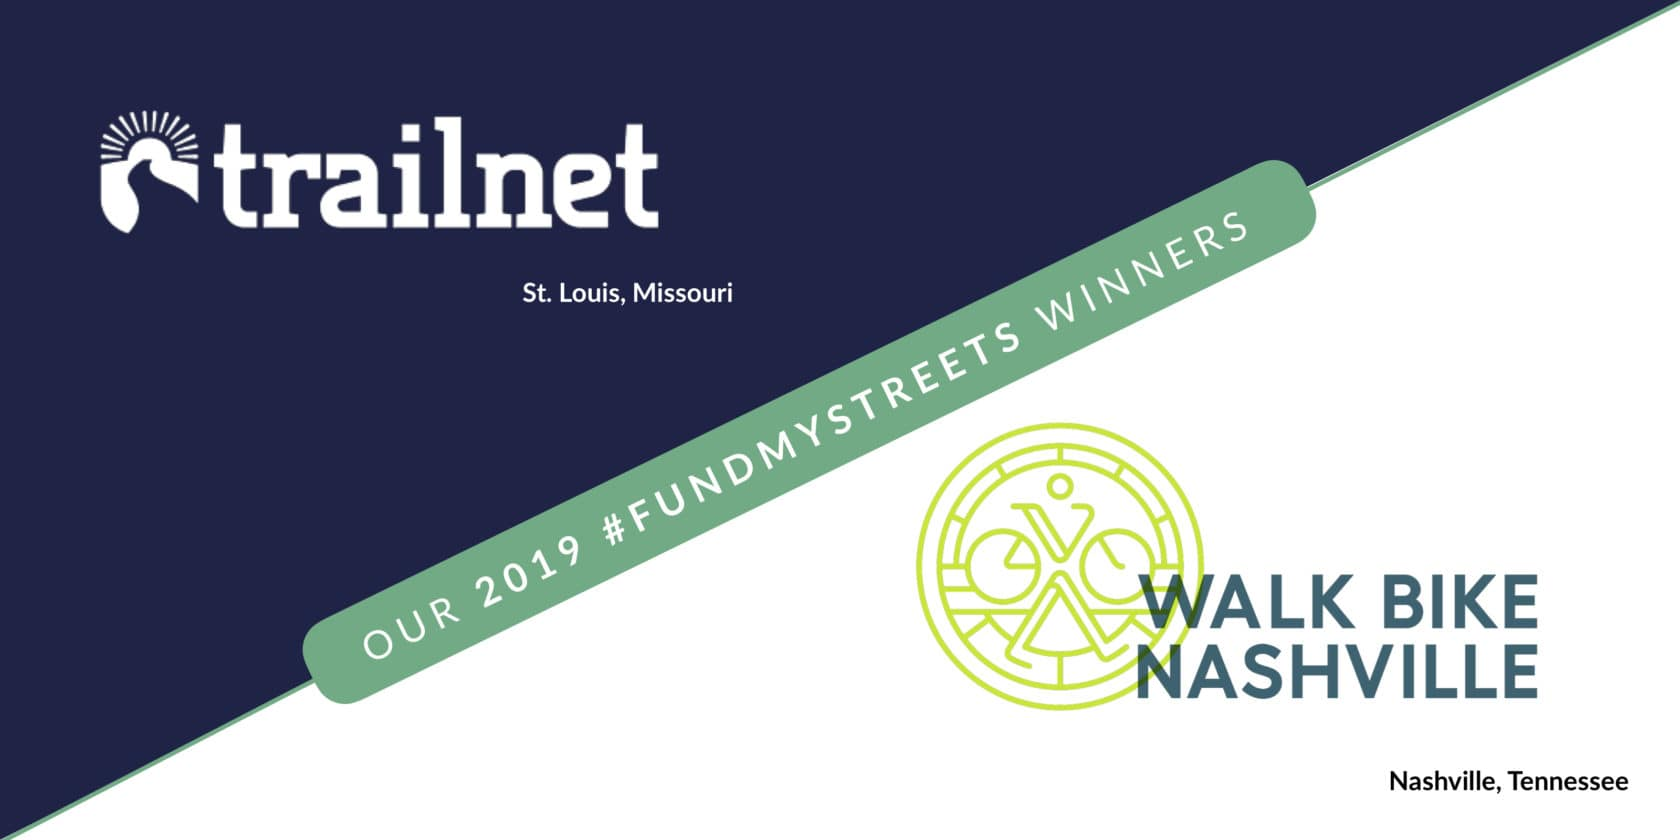 #FundMyStreets Program Commits $50,000 to Support Road Safety in Nashville & St. Louis